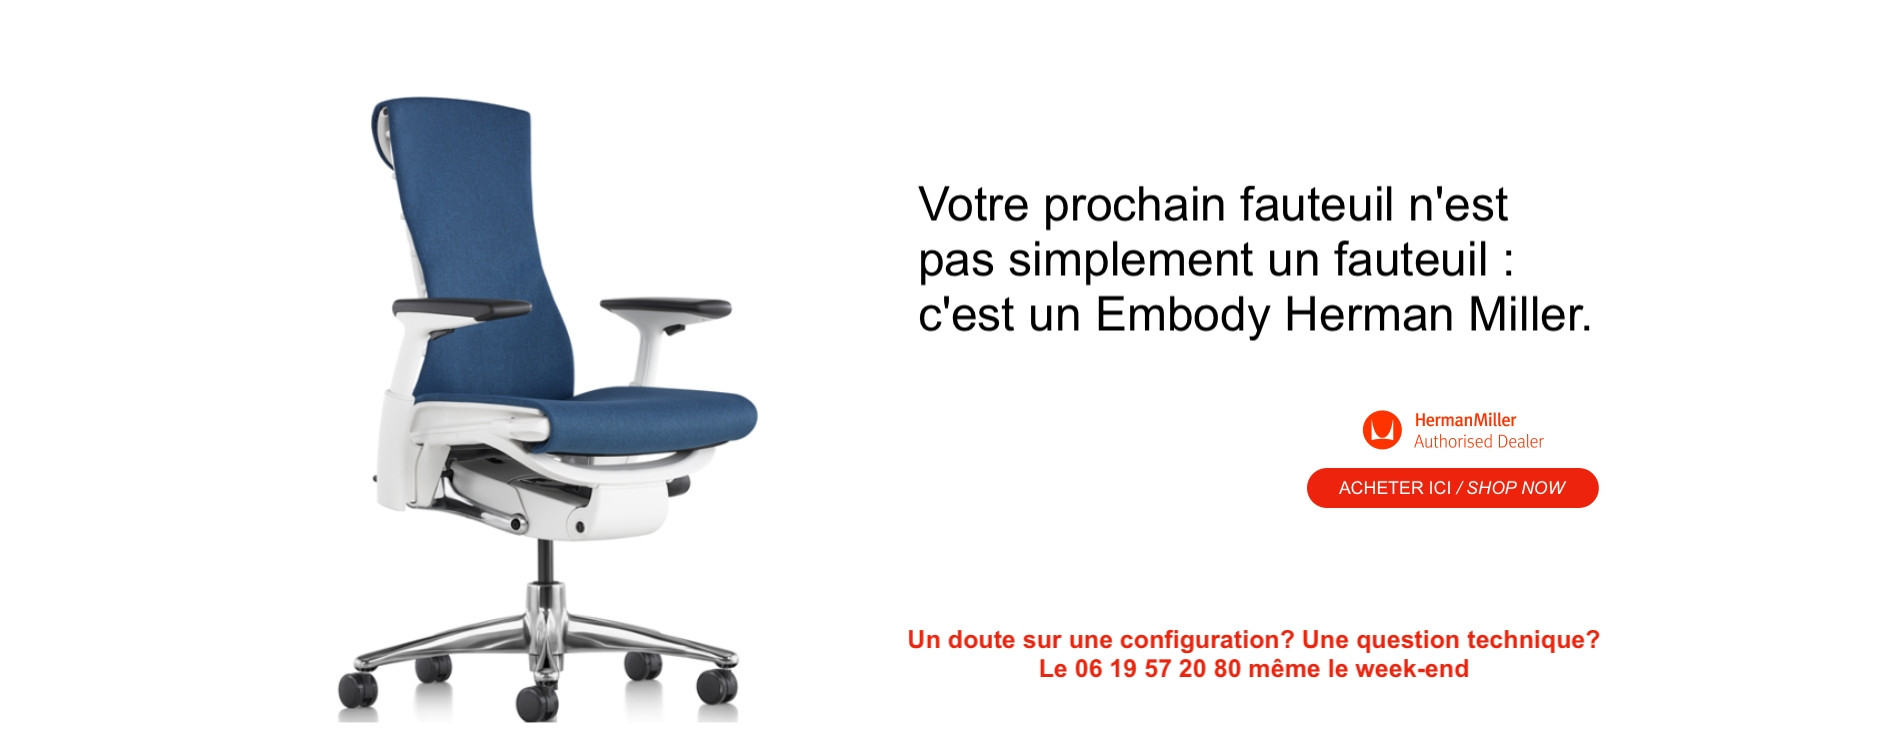 Your next chair is an Embody Herman Miller